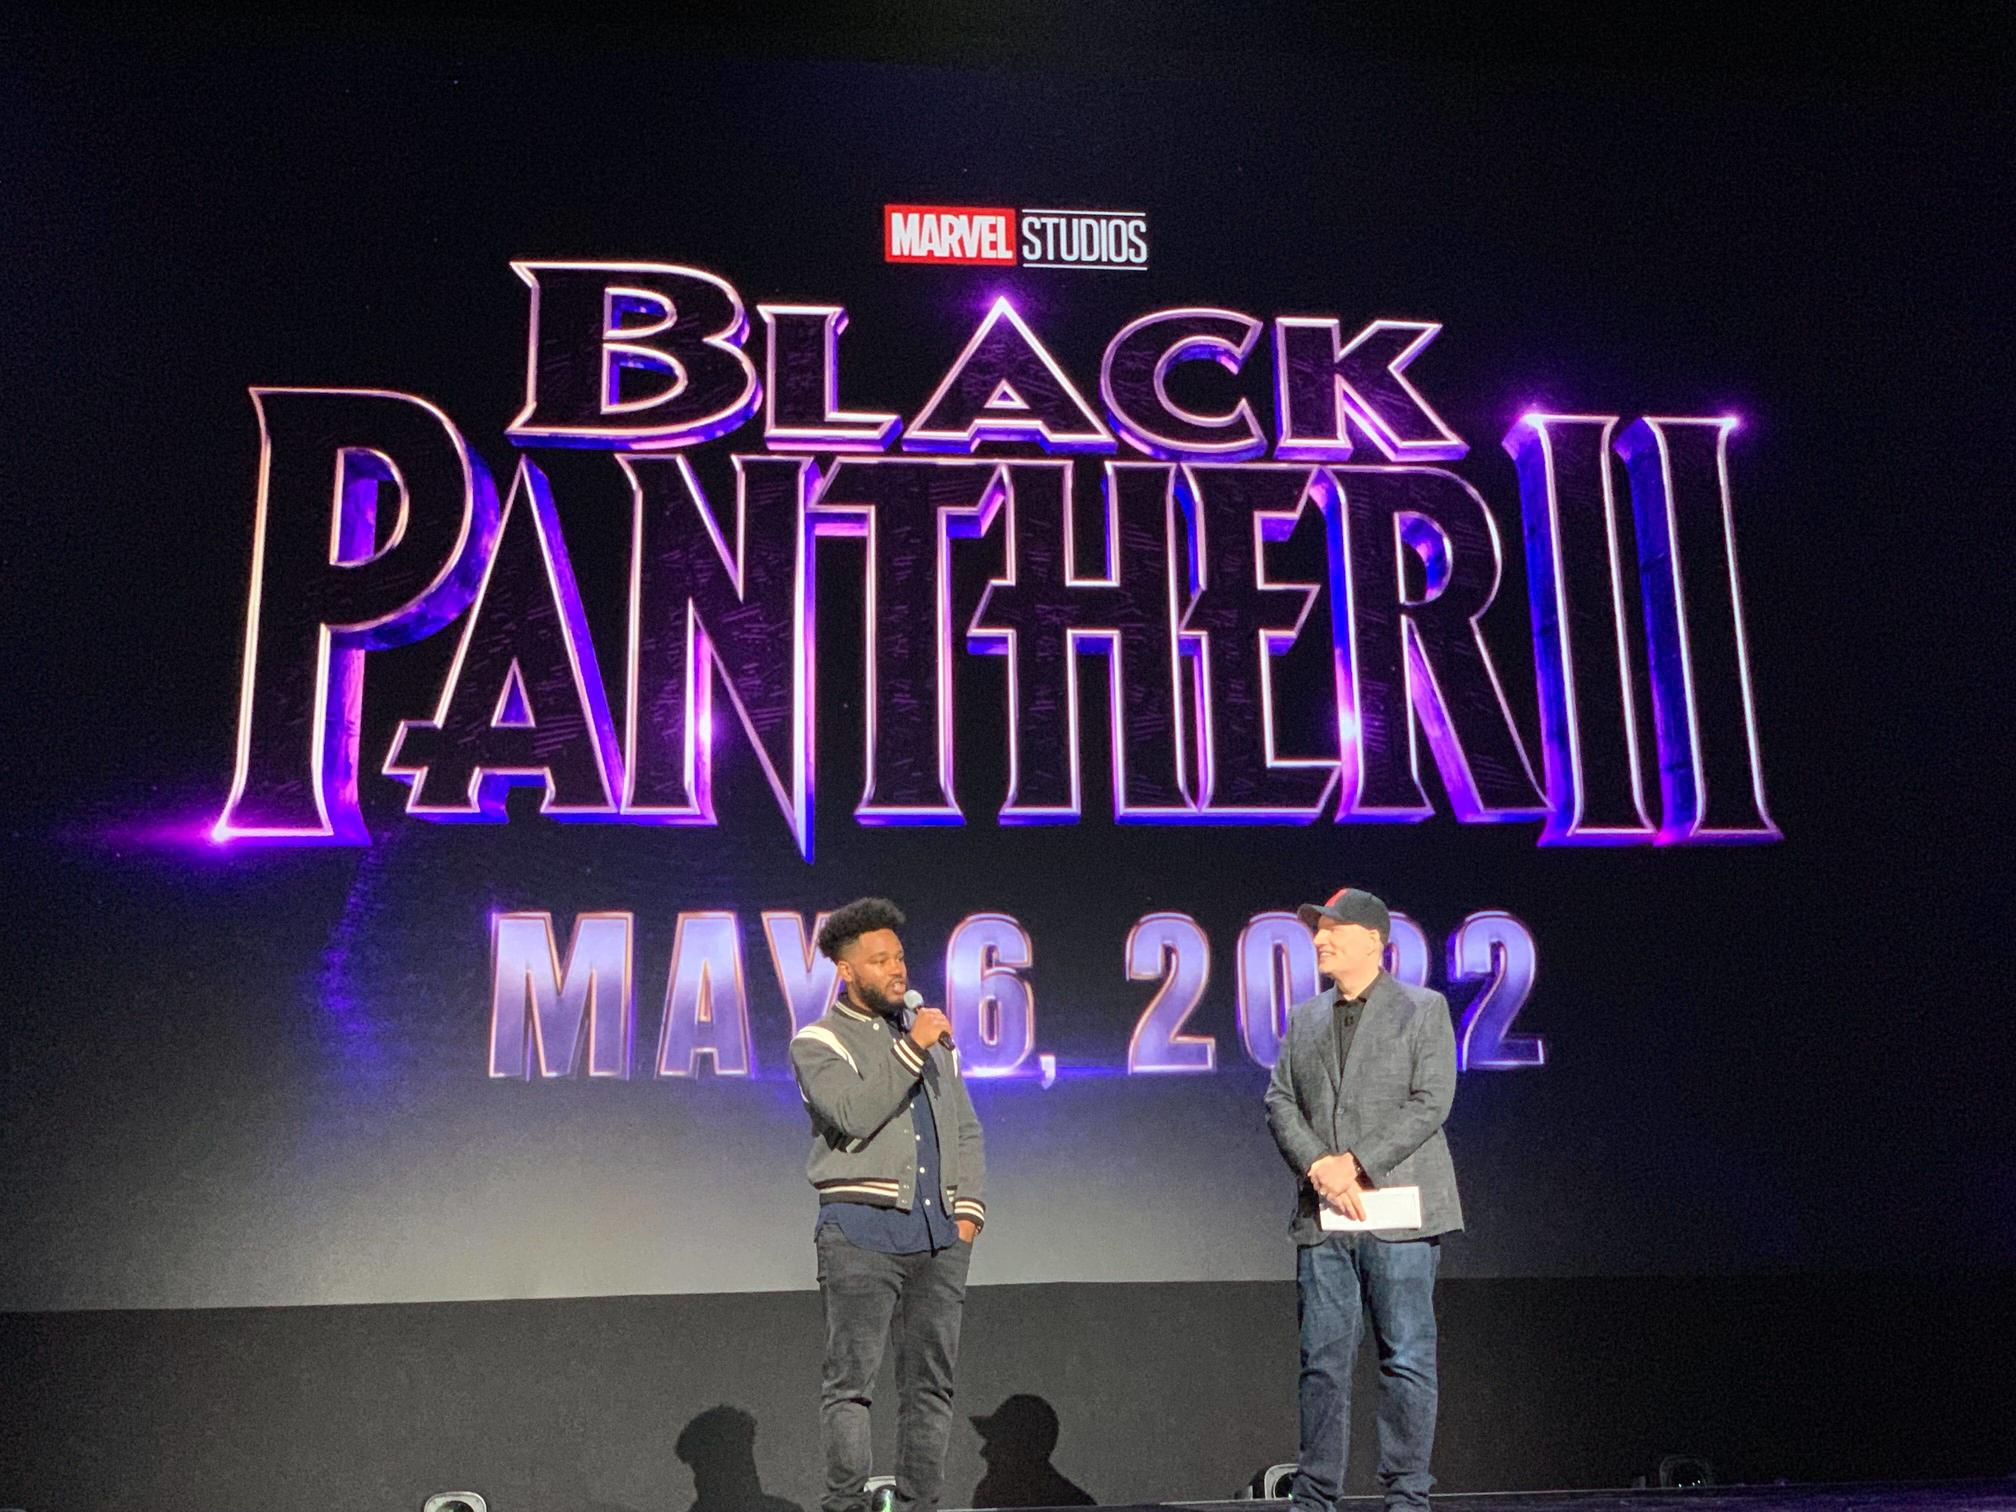 Black Panther 2 at d23